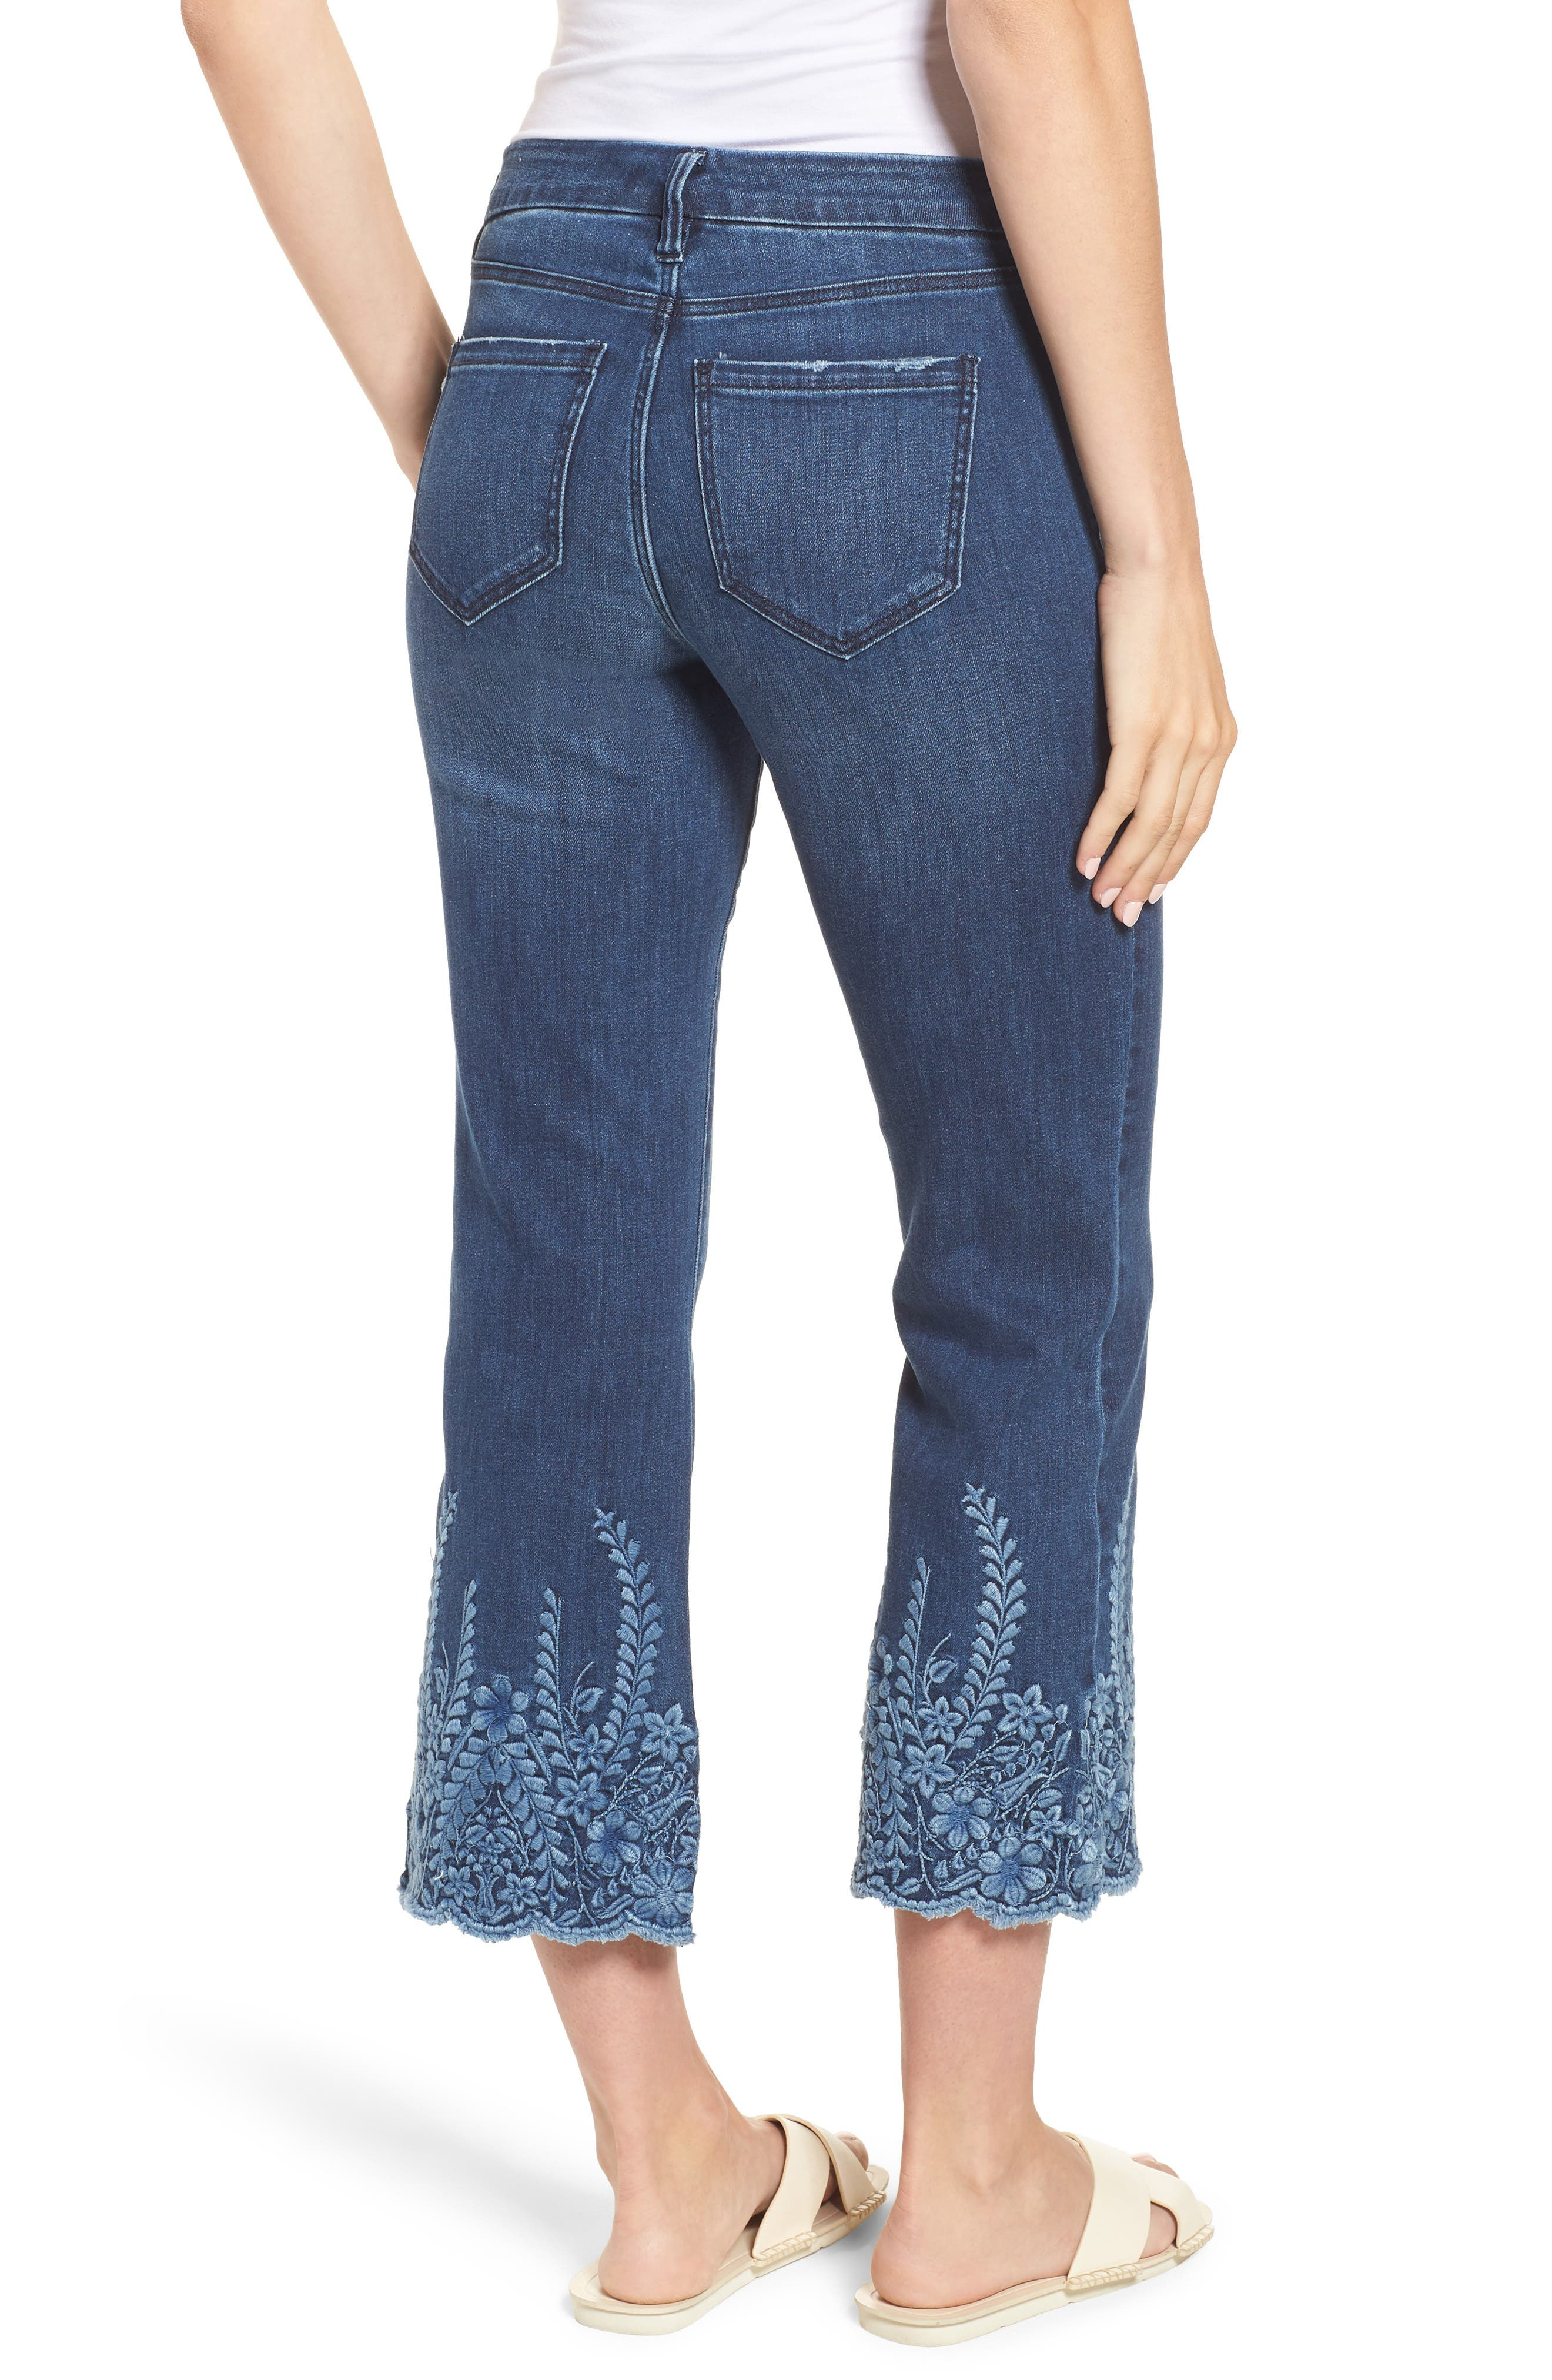 LVPL by Liverpool Coco Embroidered Hem Crop Jeans,                             Alternate thumbnail 3, color,                             Willow Wash